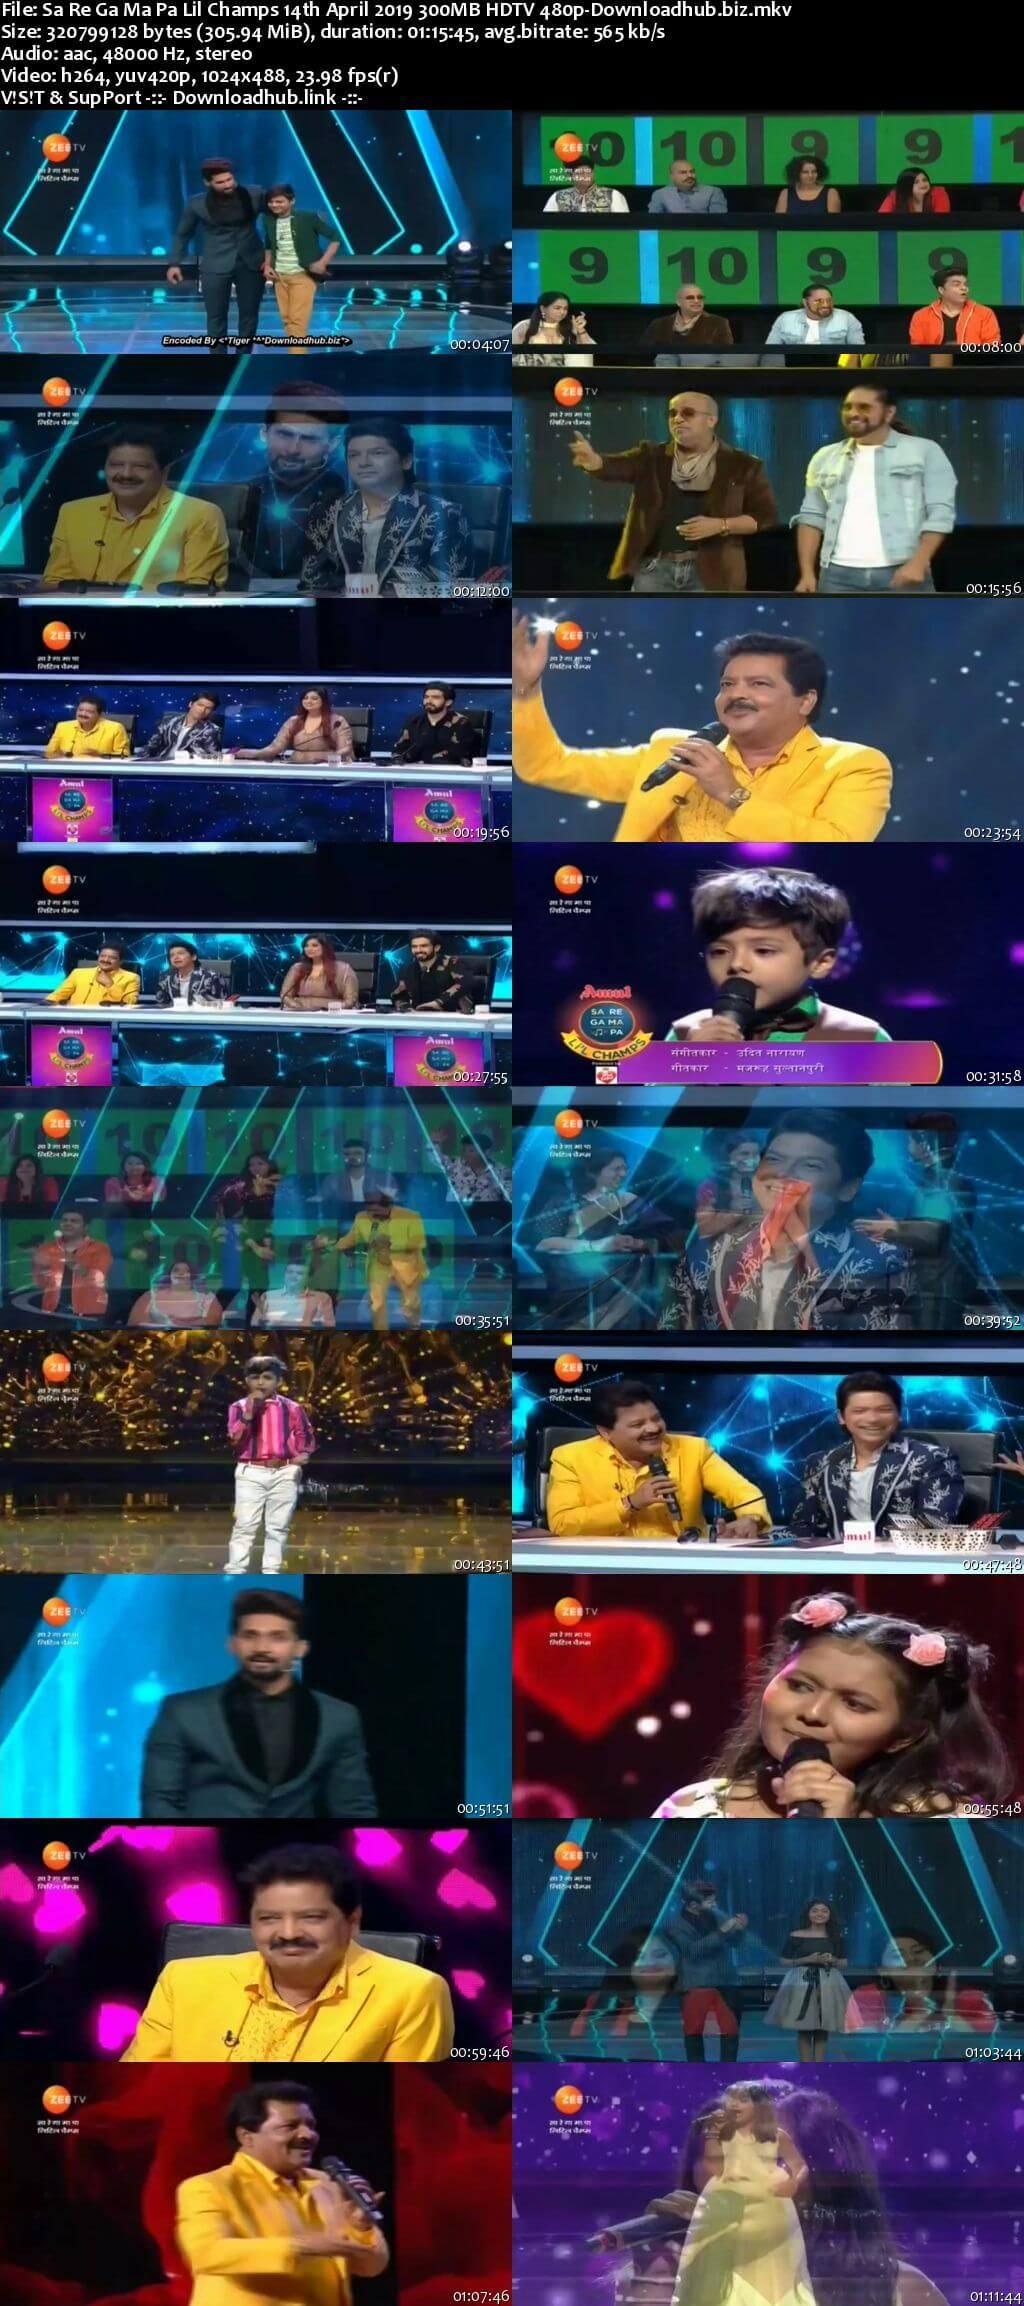 Sa Re Ga Ma Pa Lil Champs 14 April 2019 Episode 19 HDTV 480p